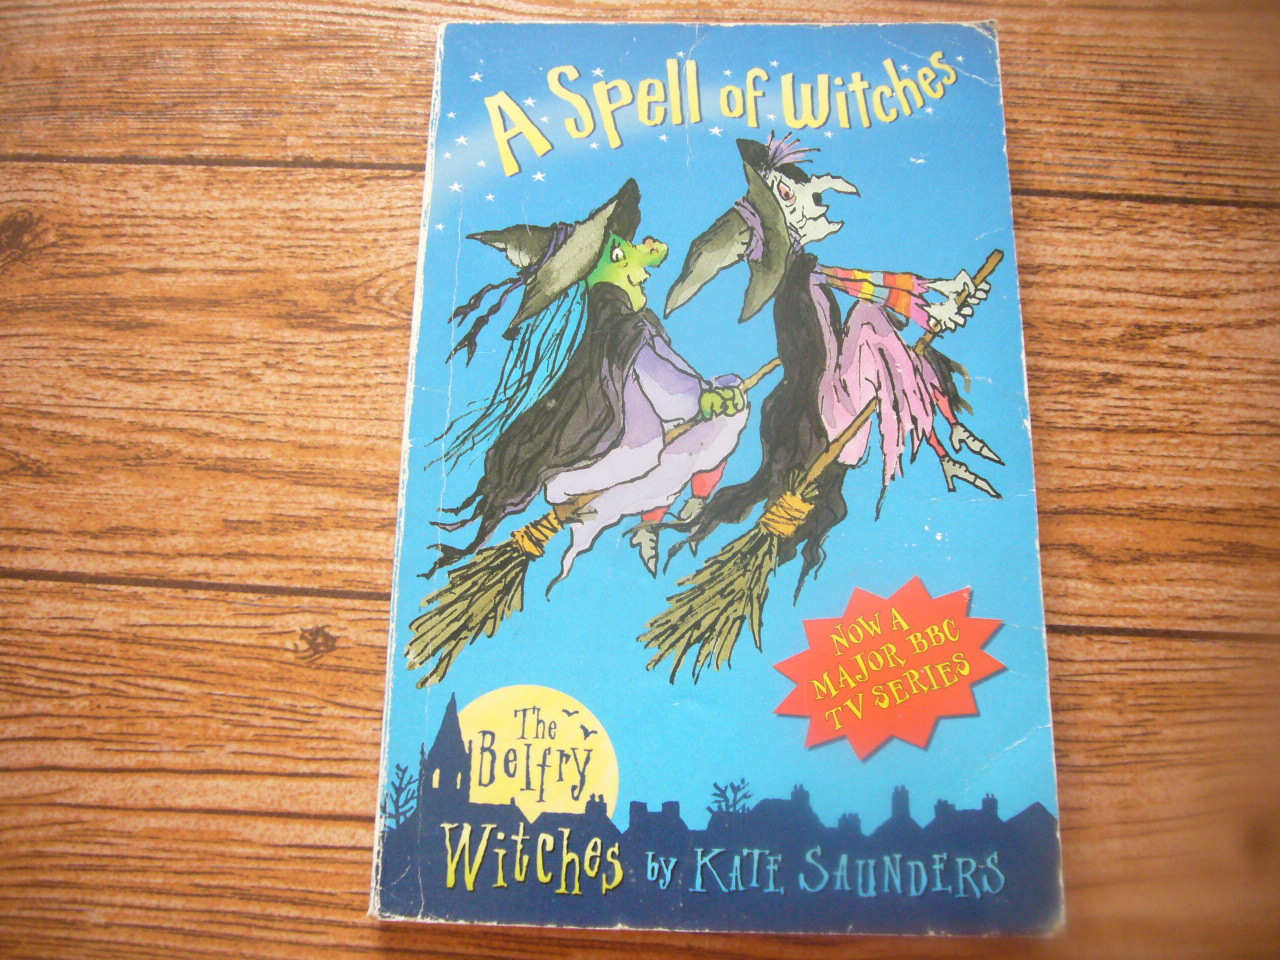 A Spell of Witches